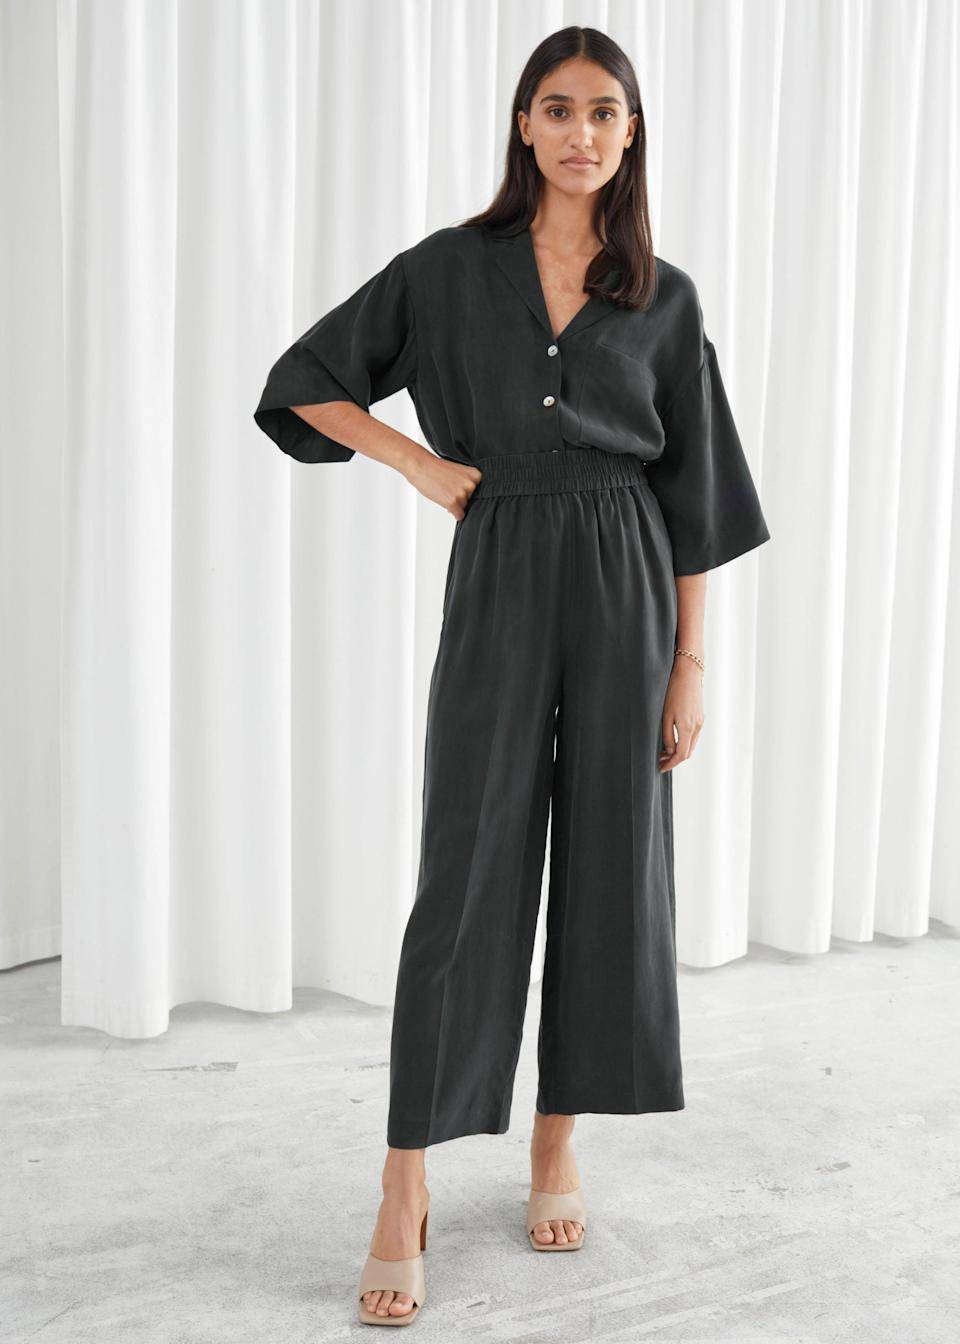 "<br> <br> <strong>& Other Stories</strong> Wide Leg Cupro Blend Cropped Trousers, $, available at <a href=""https://go.skimresources.com/?id=30283X879131&url=https%3A%2F%2Fwww.stories.com%2Fen_usd%2Fclothing%2Ftrousers%2Fculottes%2Fproduct.wide-leg-cupro-blend-cropped-trousers-black.0841092001.html"" rel=""nofollow noopener"" target=""_blank"" data-ylk=""slk:& Other Stories"" class=""link rapid-noclick-resp"">& Other Stories</a> <br> <br> <strong>& Other Stories</strong> Cupro Blend Relaxed Fit Shirt, $, available at <a href=""https://go.skimresources.com/?id=30283X879131&url=https%3A%2F%2Fwww.stories.com%2Fen_usd%2Fclothing%2Fblouses-shirts%2Fshirts%2Fproduct.cupro-blend-relaxed-fit-shirt-black.0864691004.html"" rel=""nofollow noopener"" target=""_blank"" data-ylk=""slk:& Other Stories"" class=""link rapid-noclick-resp"">& Other Stories</a>"